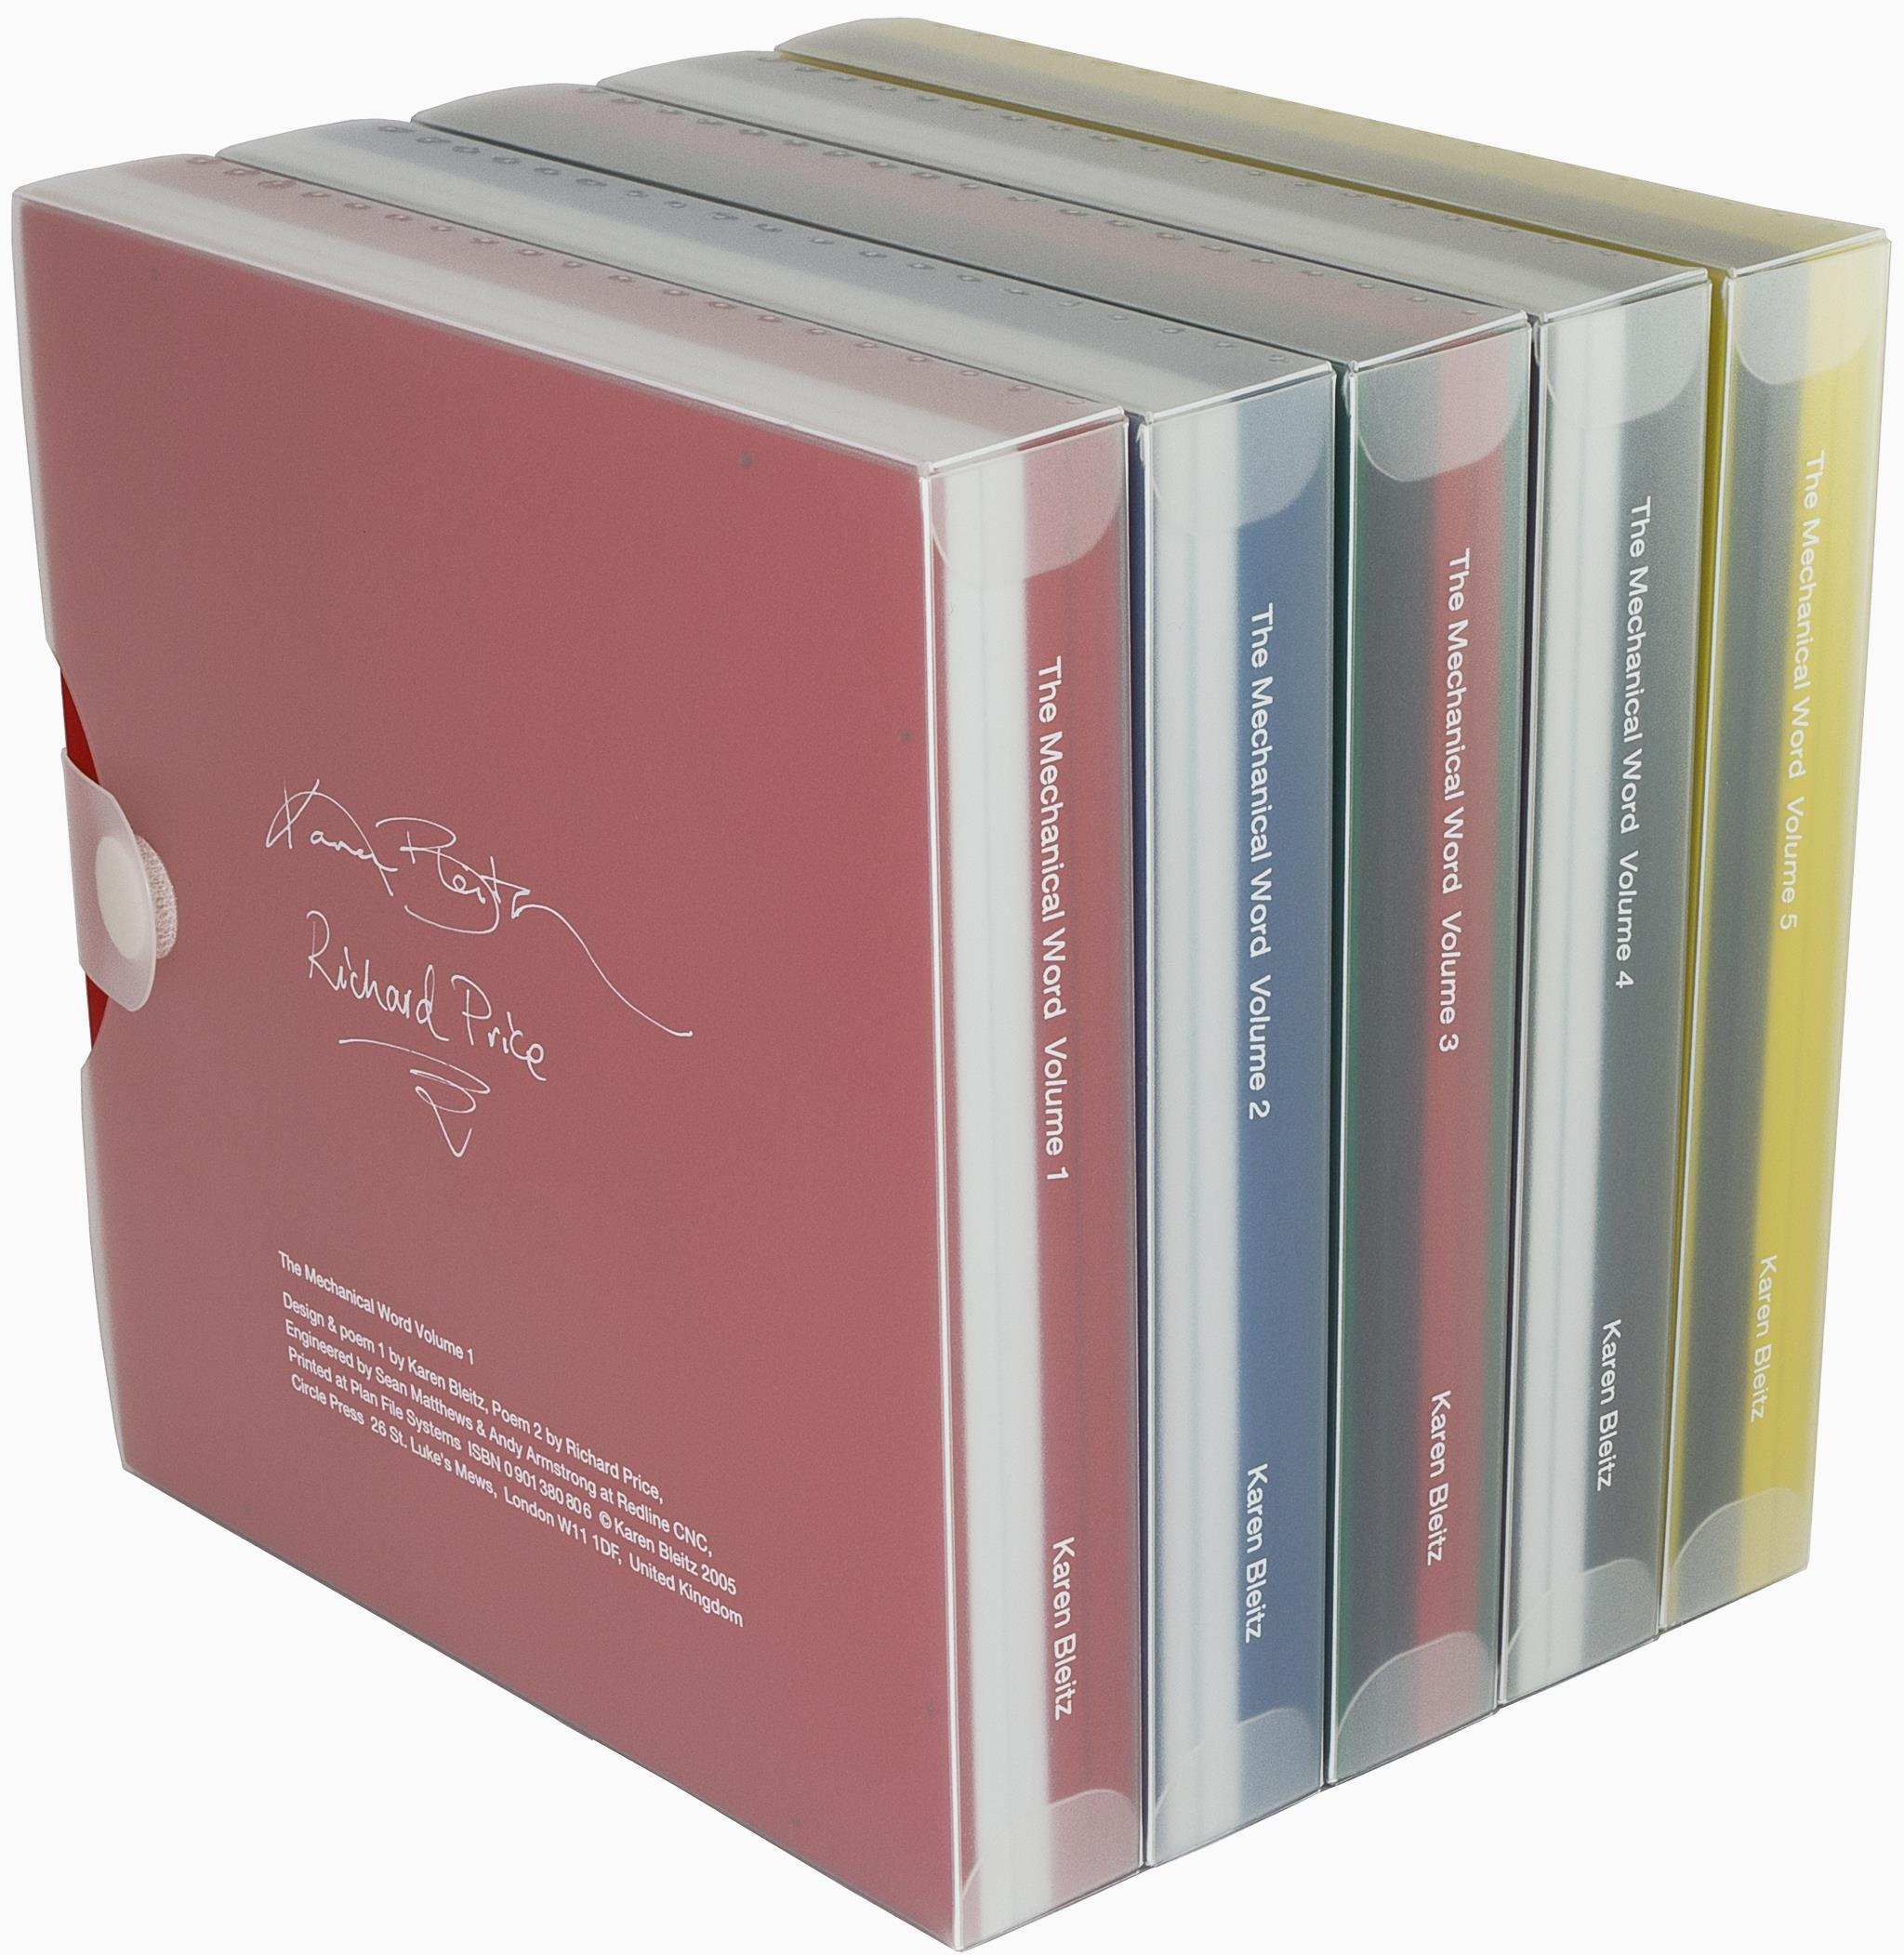 Artists book series titled The Mechanical Word Volumes 1 through 5 by Karen Bleitz encased in polypropylene boxes.